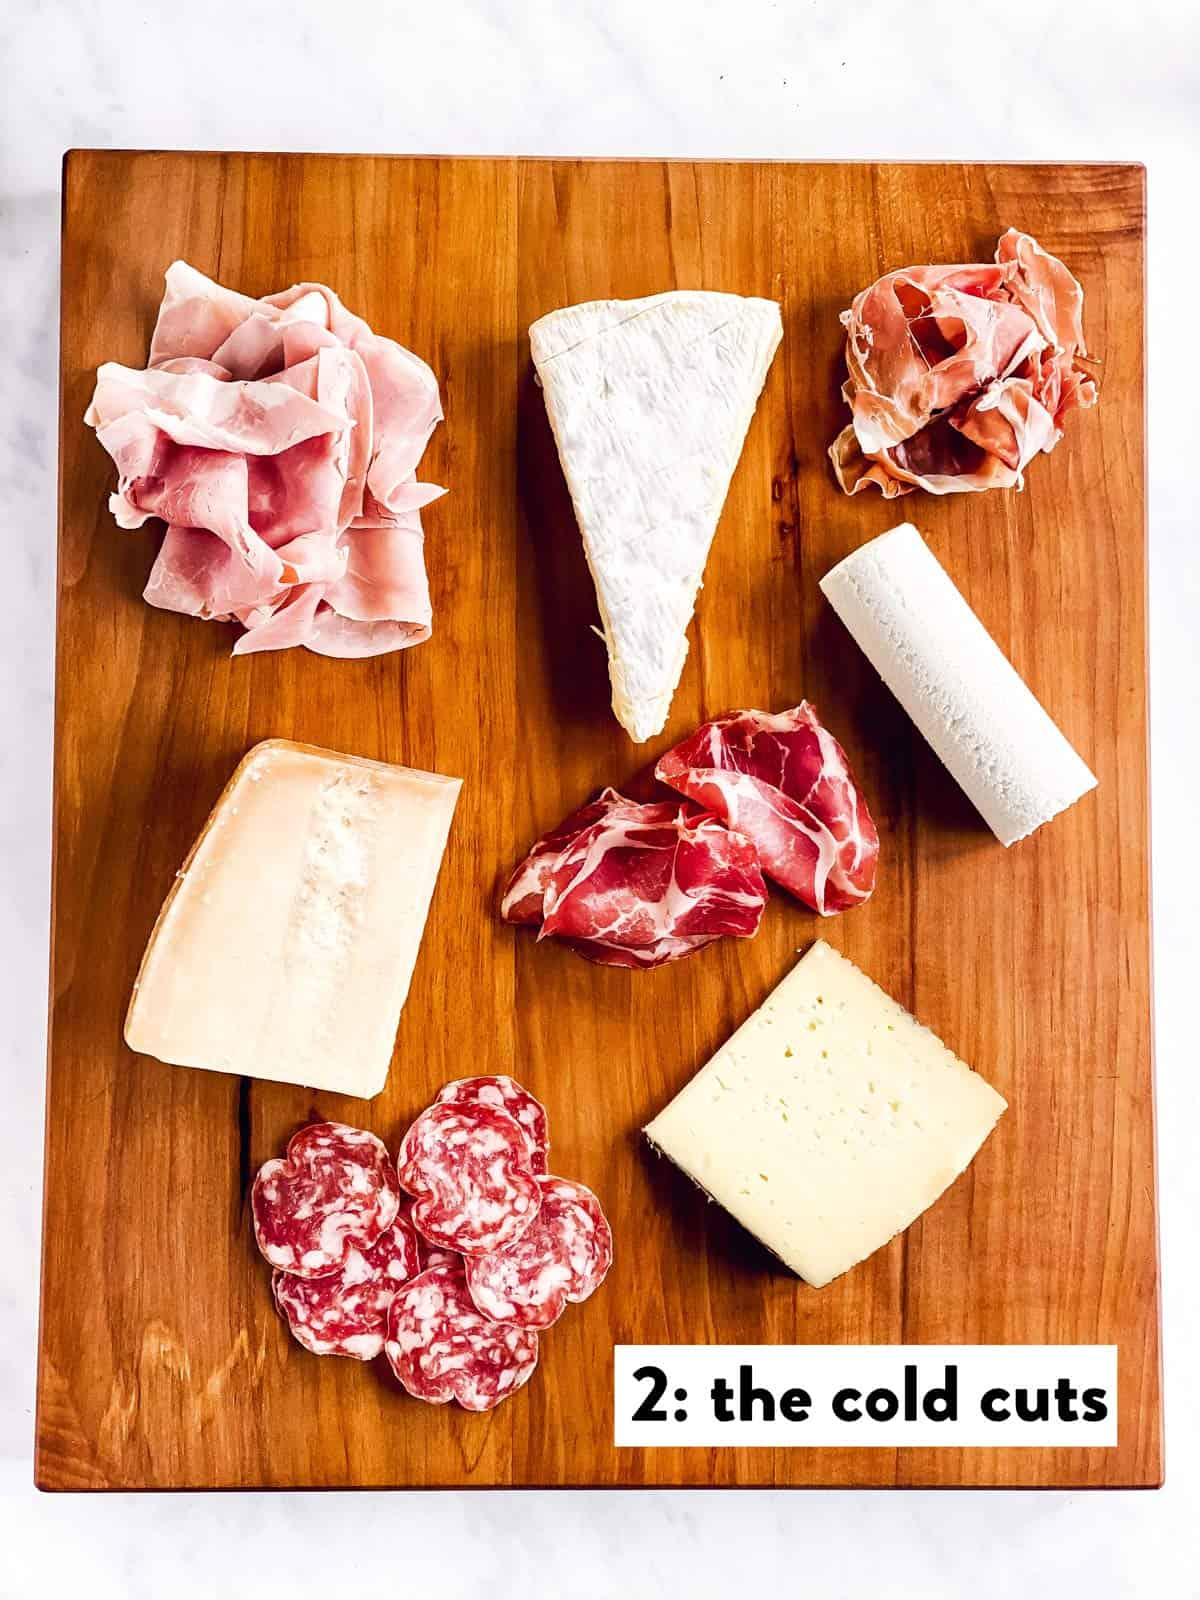 four types of cheese and cold cuts on a wooden board